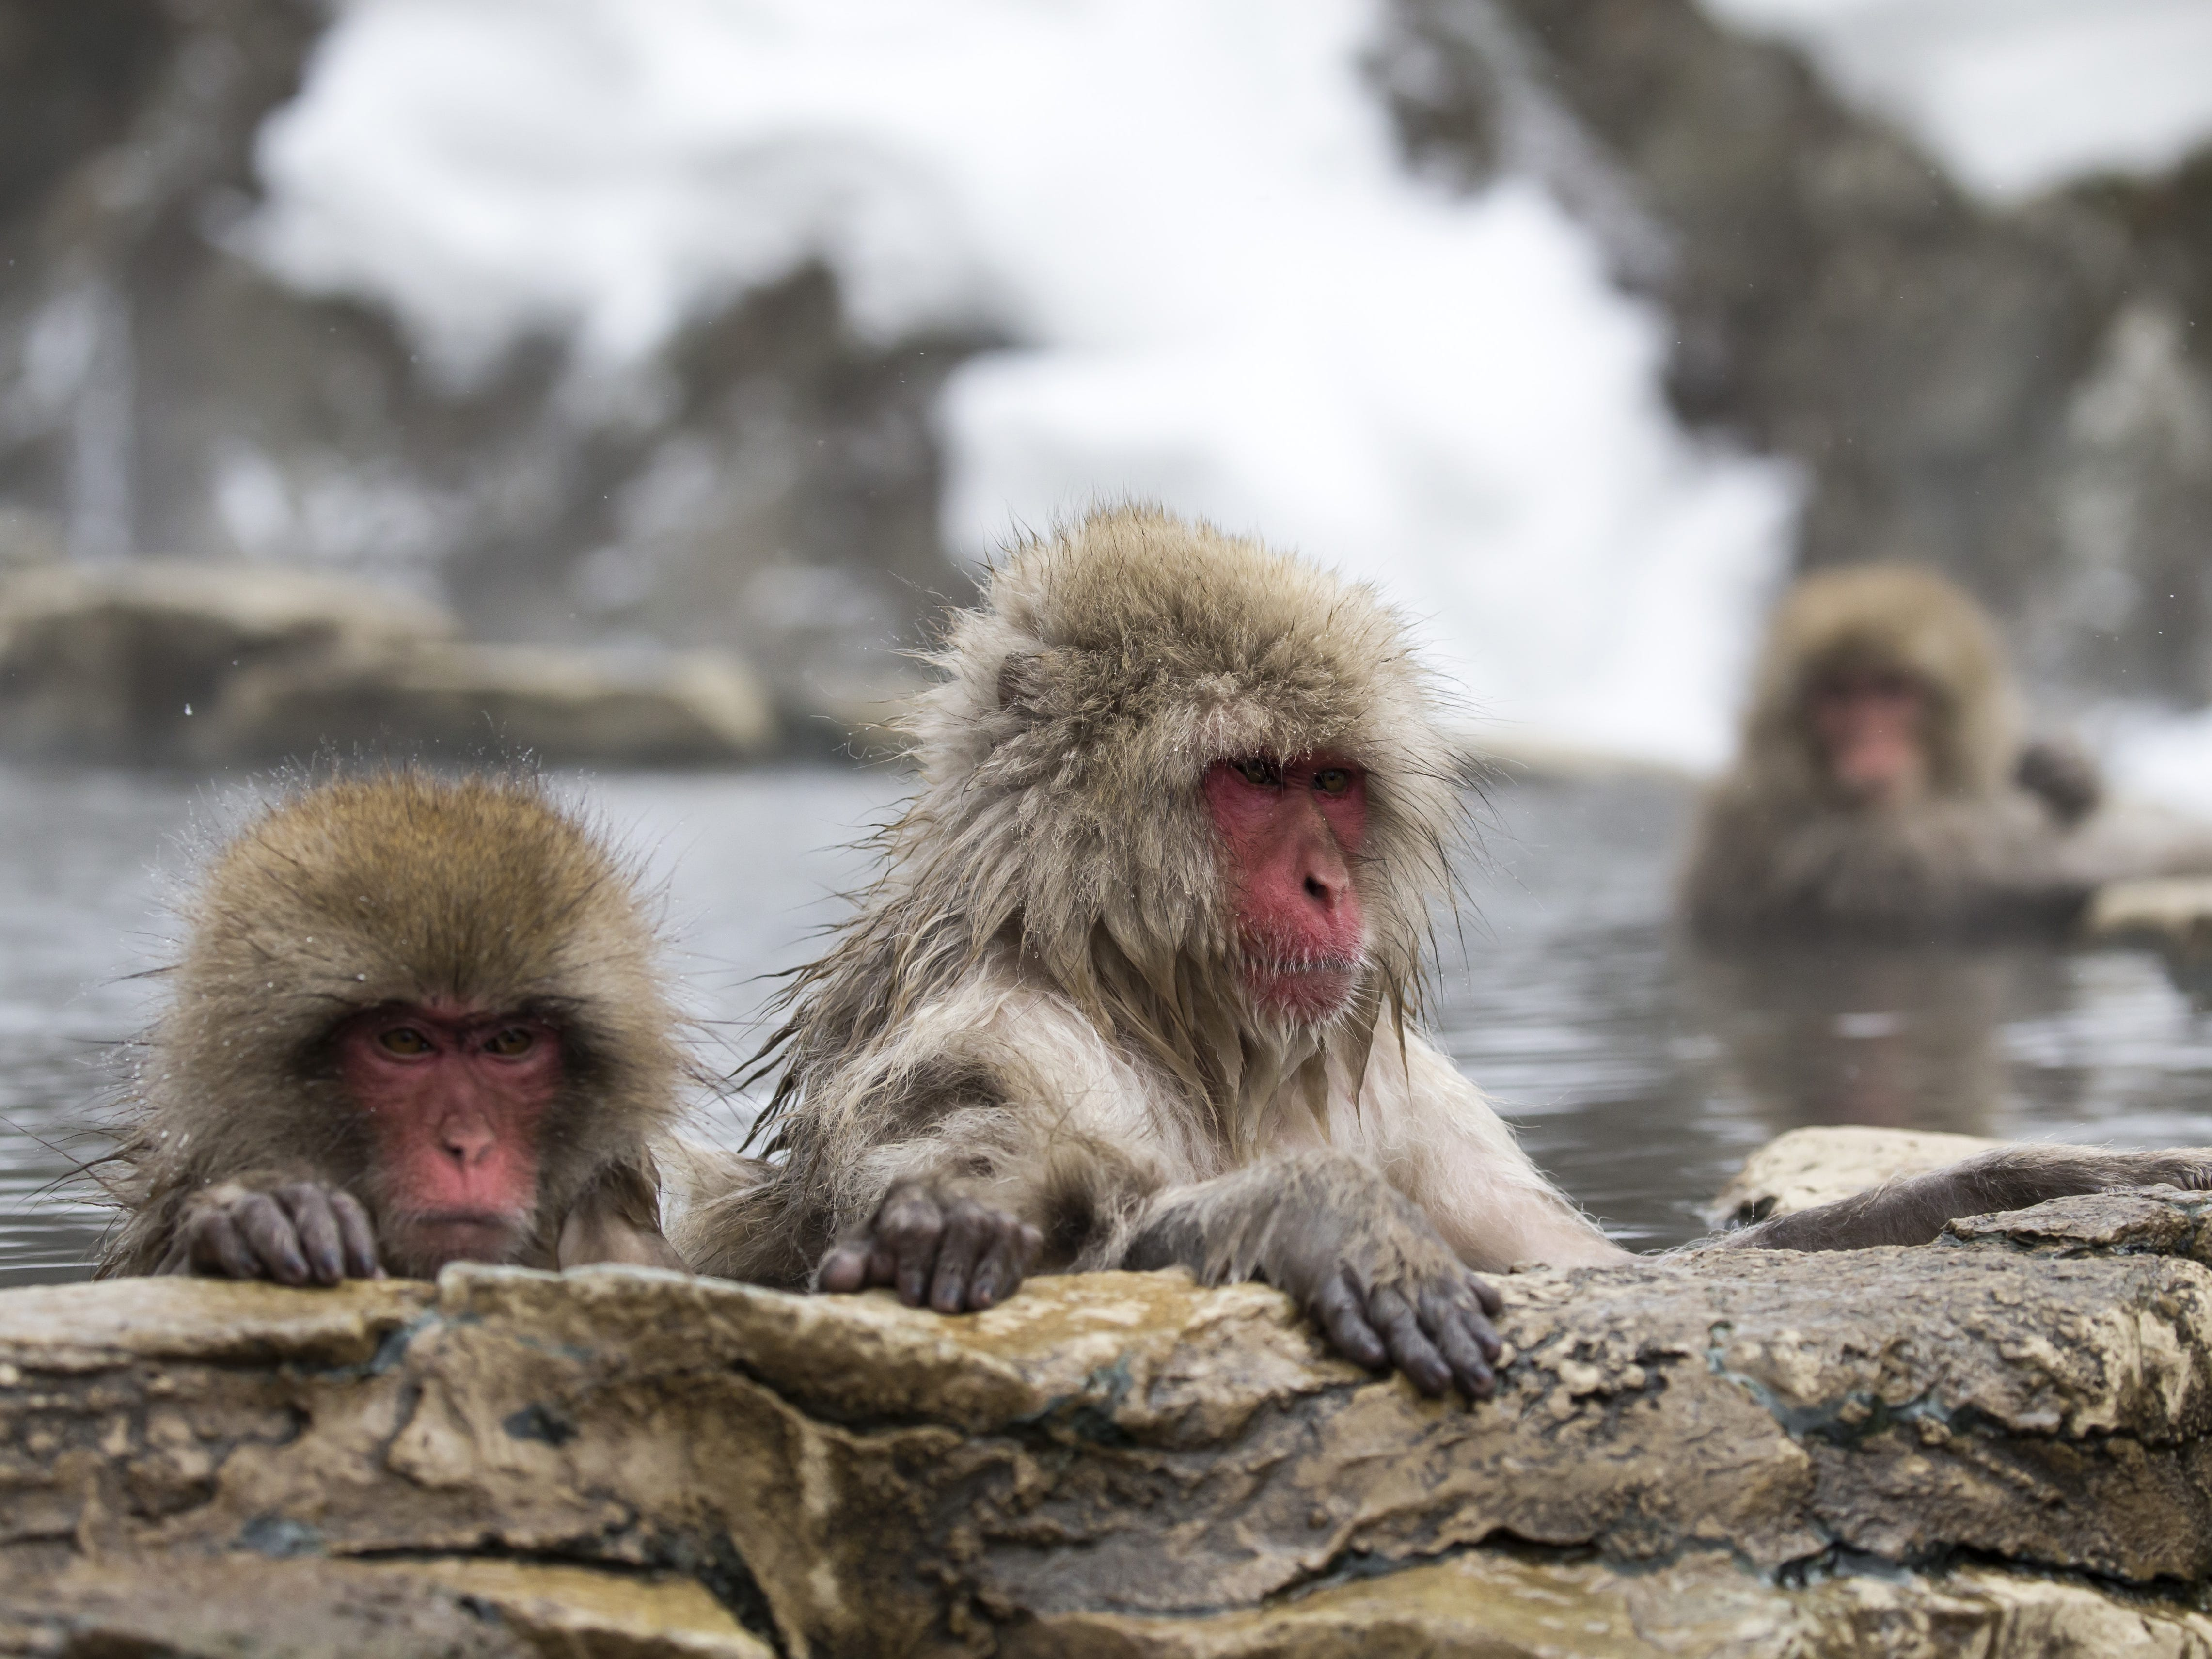 YAMANOUCHI, JAPAN - FEBRUARY 08: Macaque monkeys bathe in a hot spring at the Jigokudani Yaen-koen wild Macaque monkey park on February 8, 2019 in Yamanouchi, Japan. The wild Japanese macaques are known as snow monkeys, according to the park's official website. (Photo by Tomohiro Ohsumi/Getty Images) ORG XMIT: 775292339 ORIG FILE ID: 1128215722